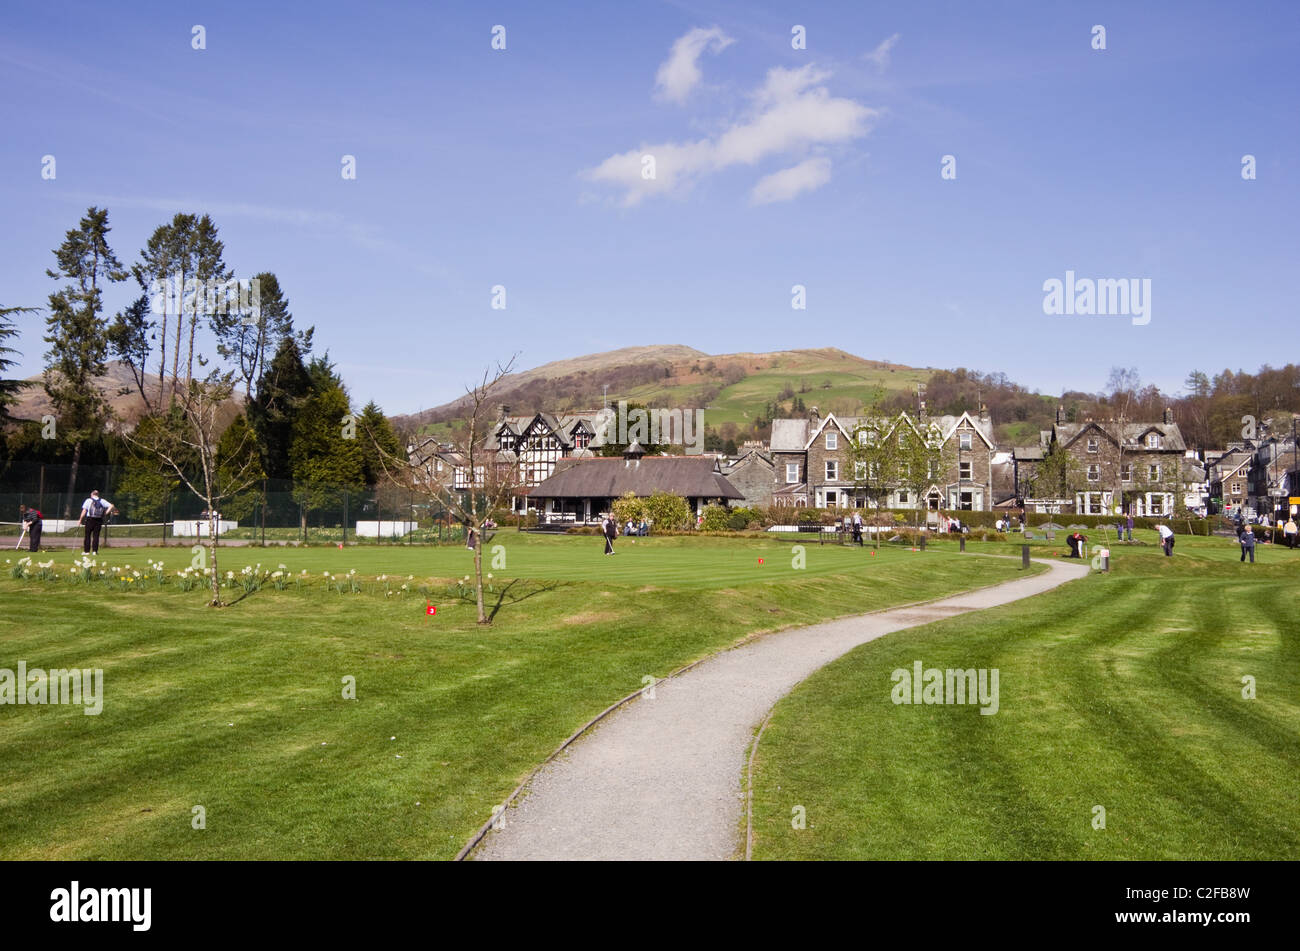 Ambleside, Cumbria, England, UK, Britain. View of the Cumbrian town from across the park putting green - Stock Image